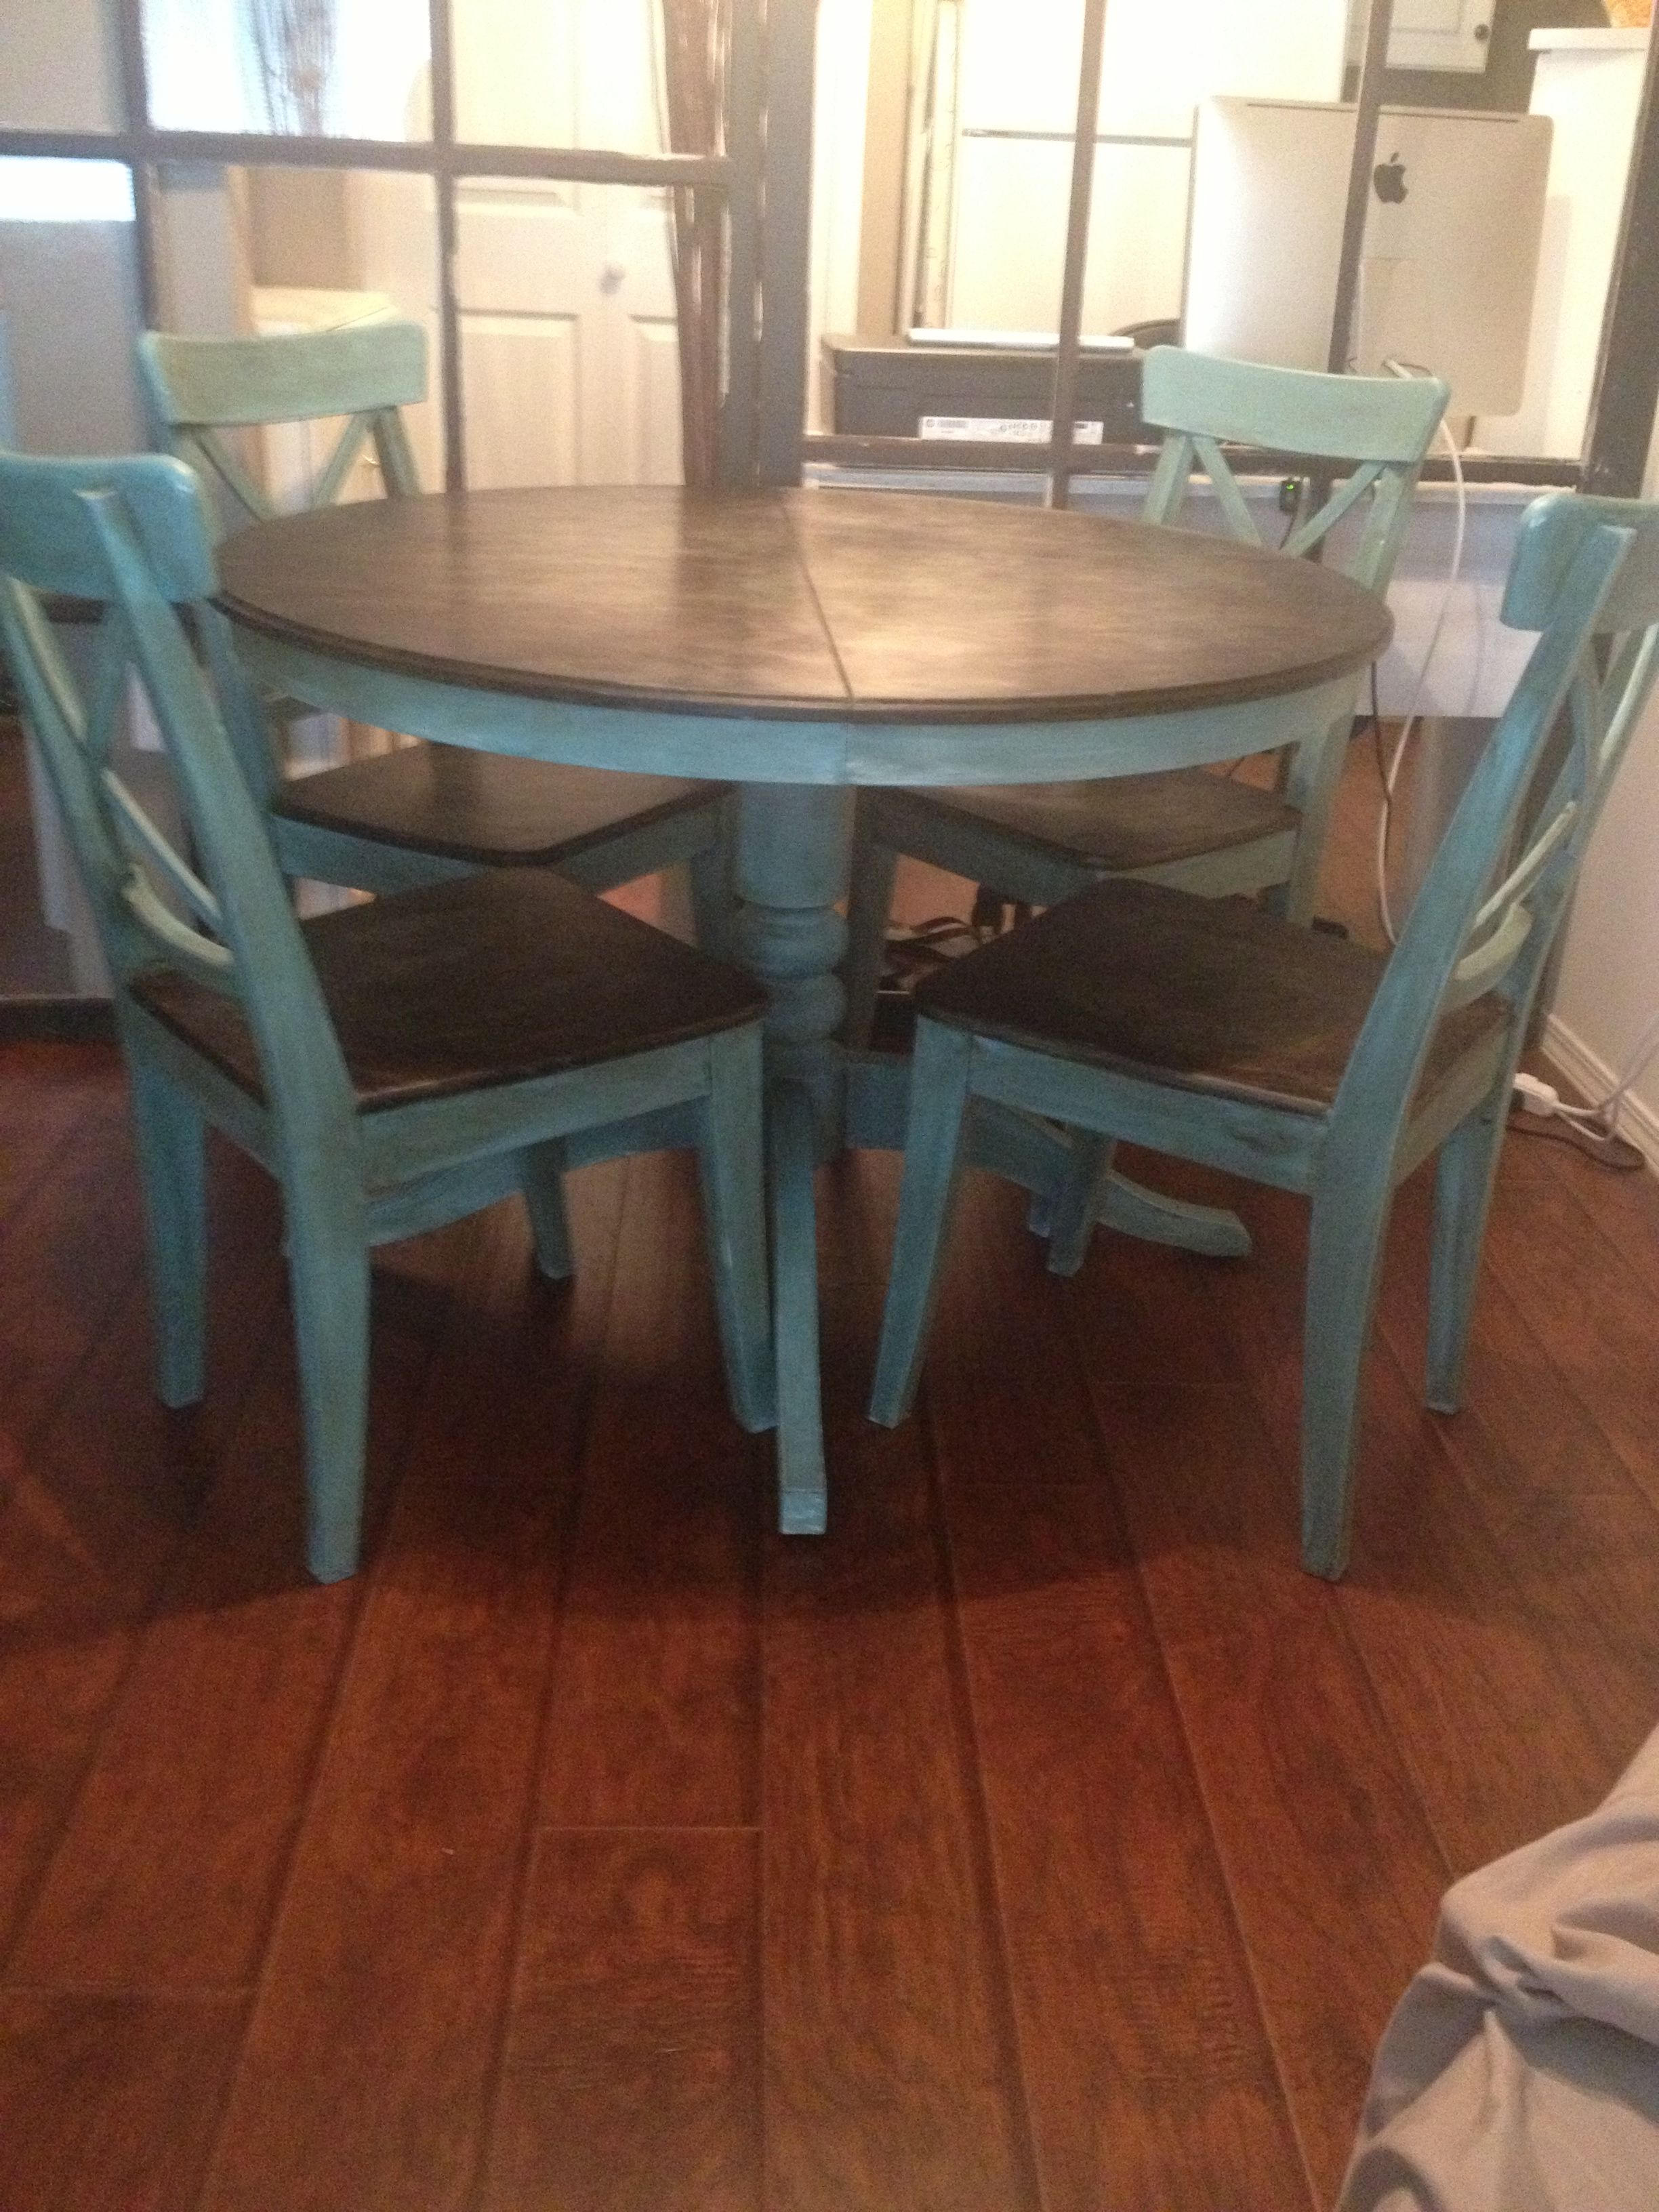 Diy Ikea Hacks White Table Painted With Annie Sloan